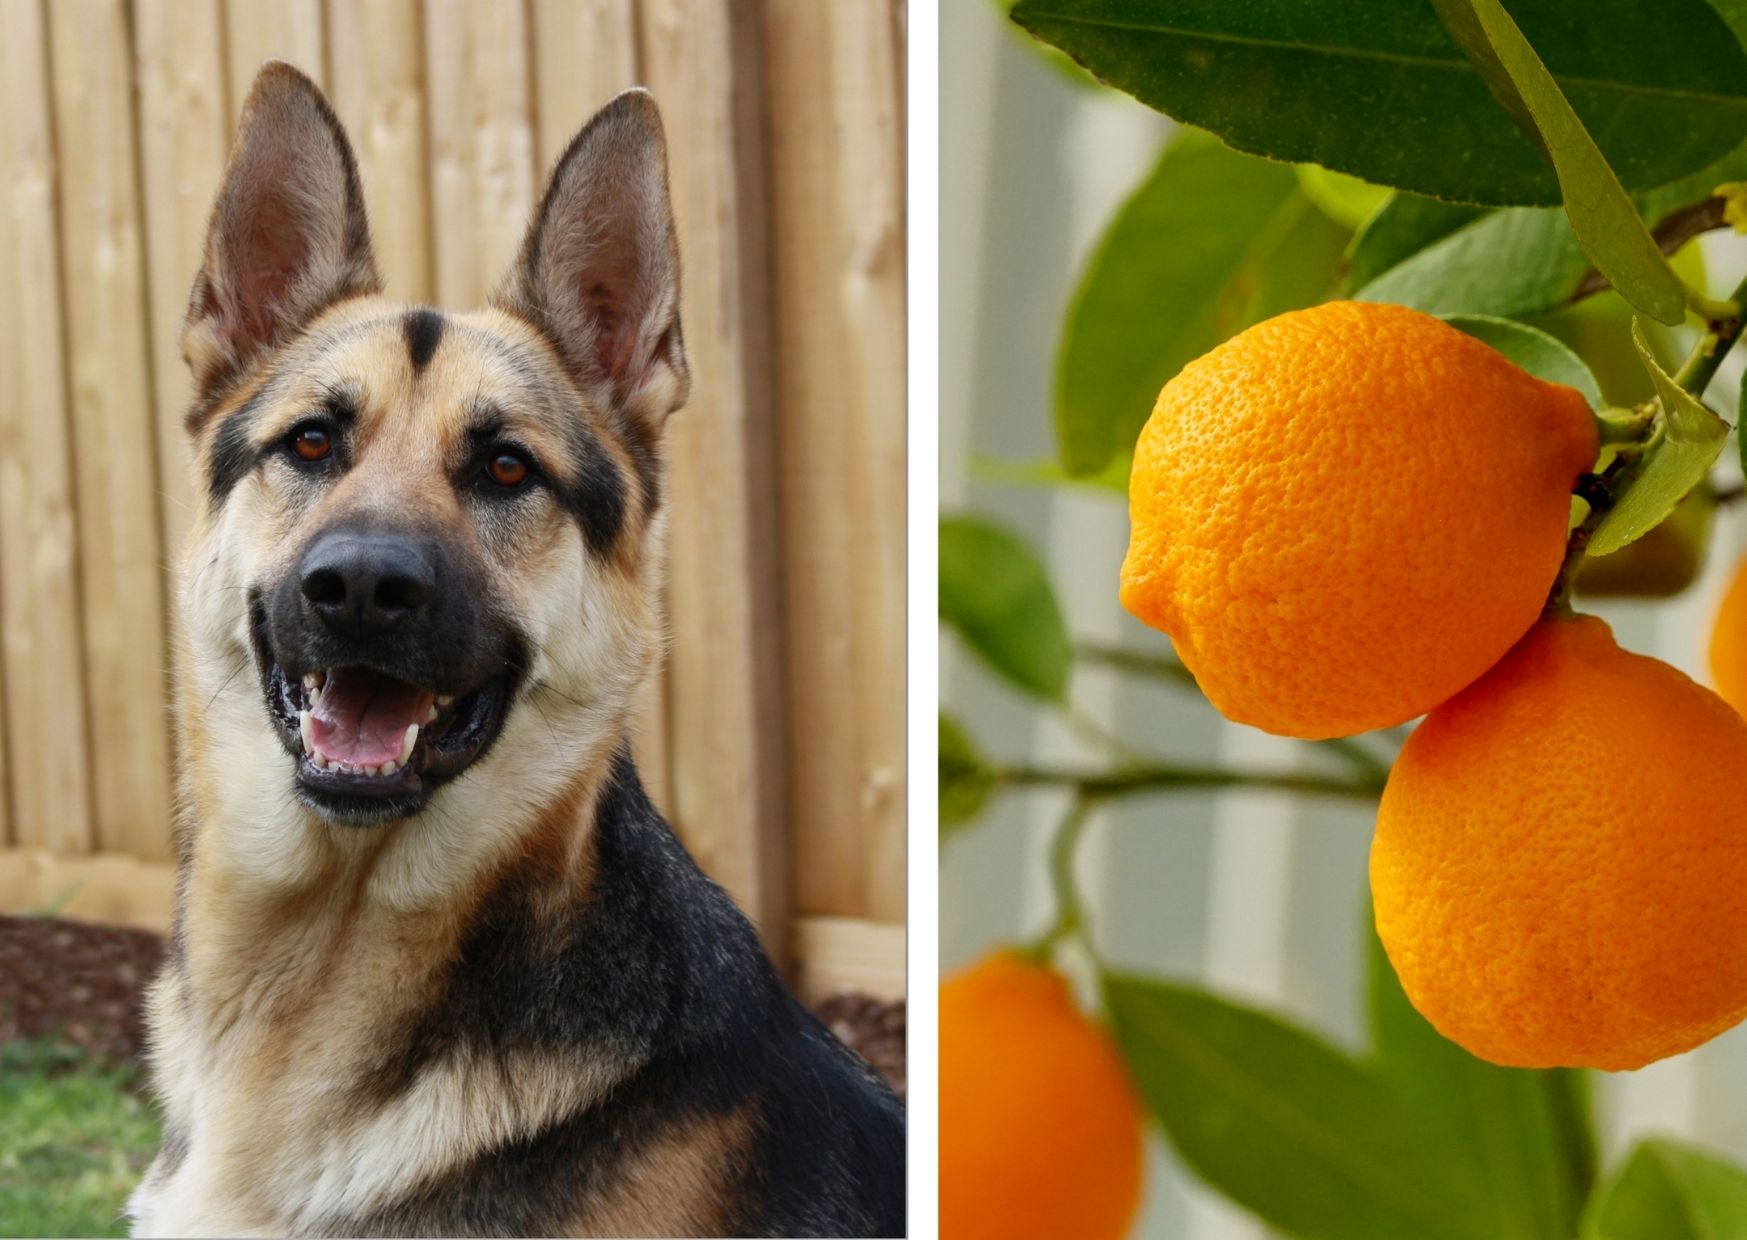 Can German shepherd eat oranges?